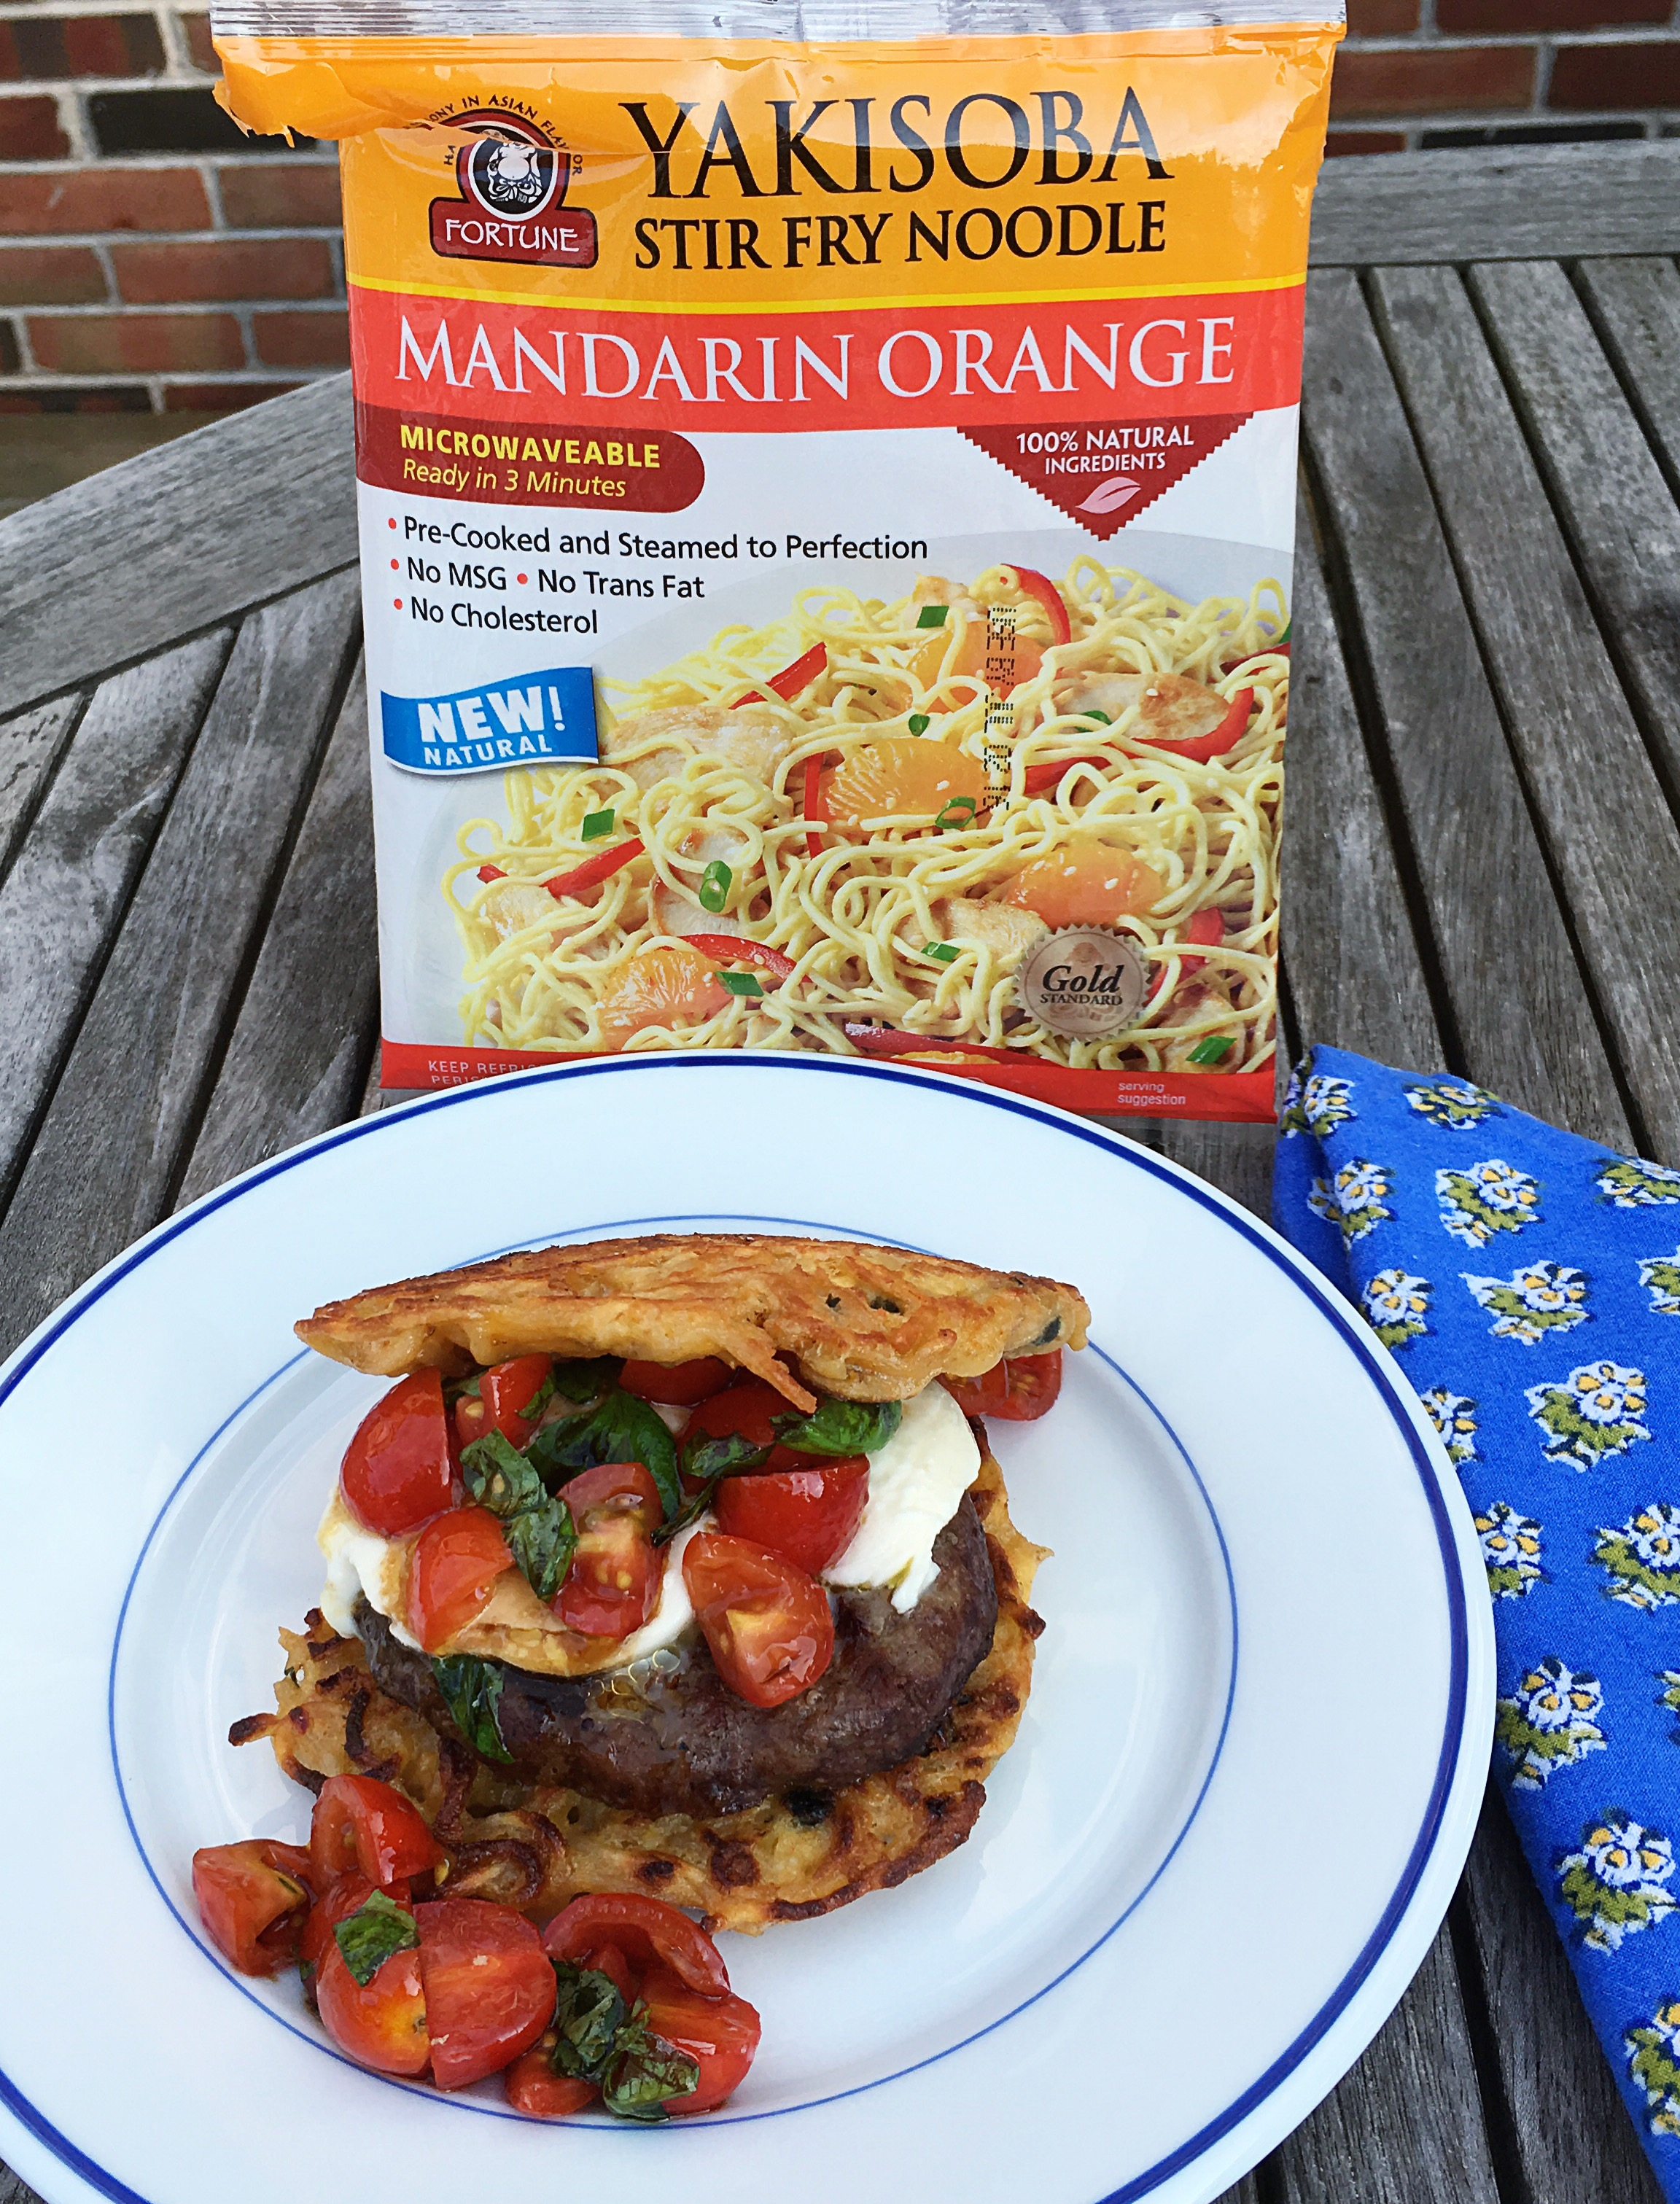 burger on noodle bun with tomatoes and cheese